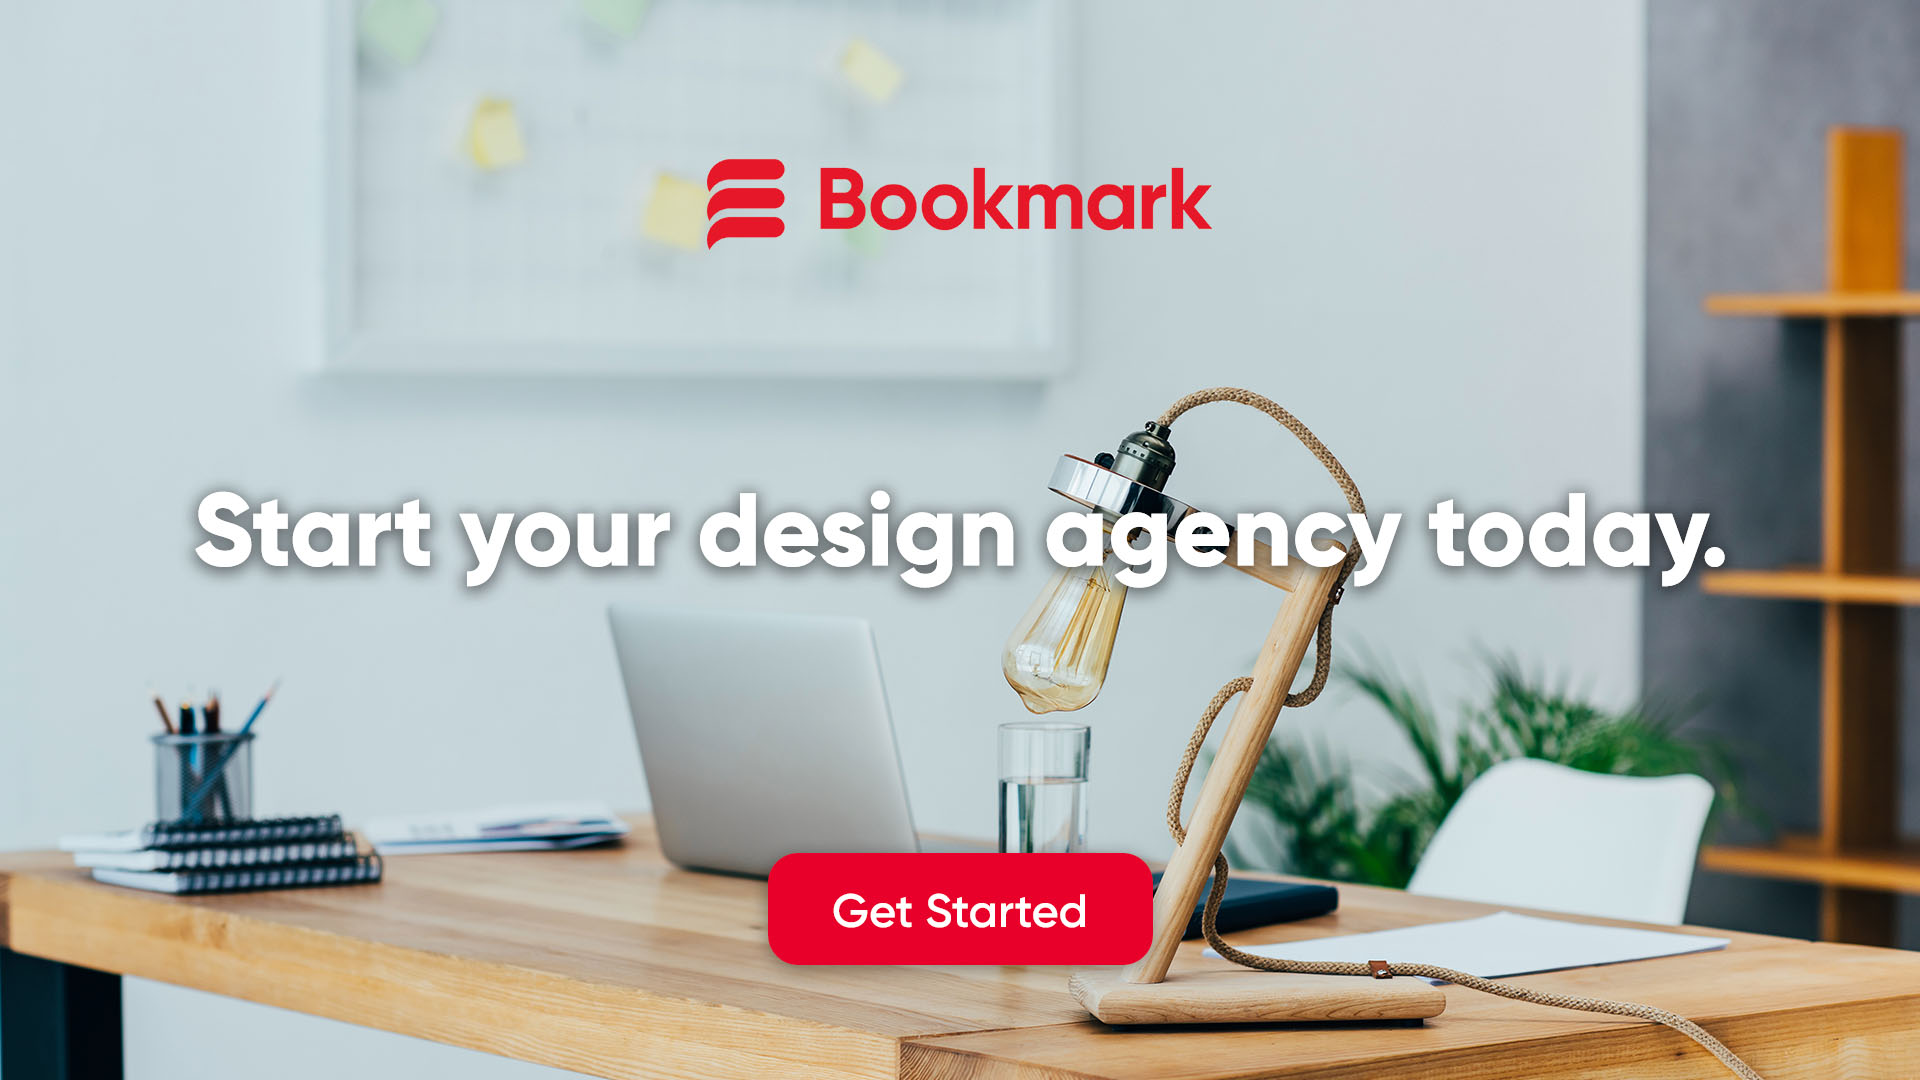 design agency, make extra cash, make money from home, online classifieds, searching online classifieds, side gig, side hustle, side job, start a design agency, website design, work from home, work from home, web design agency, website design, agency solutions